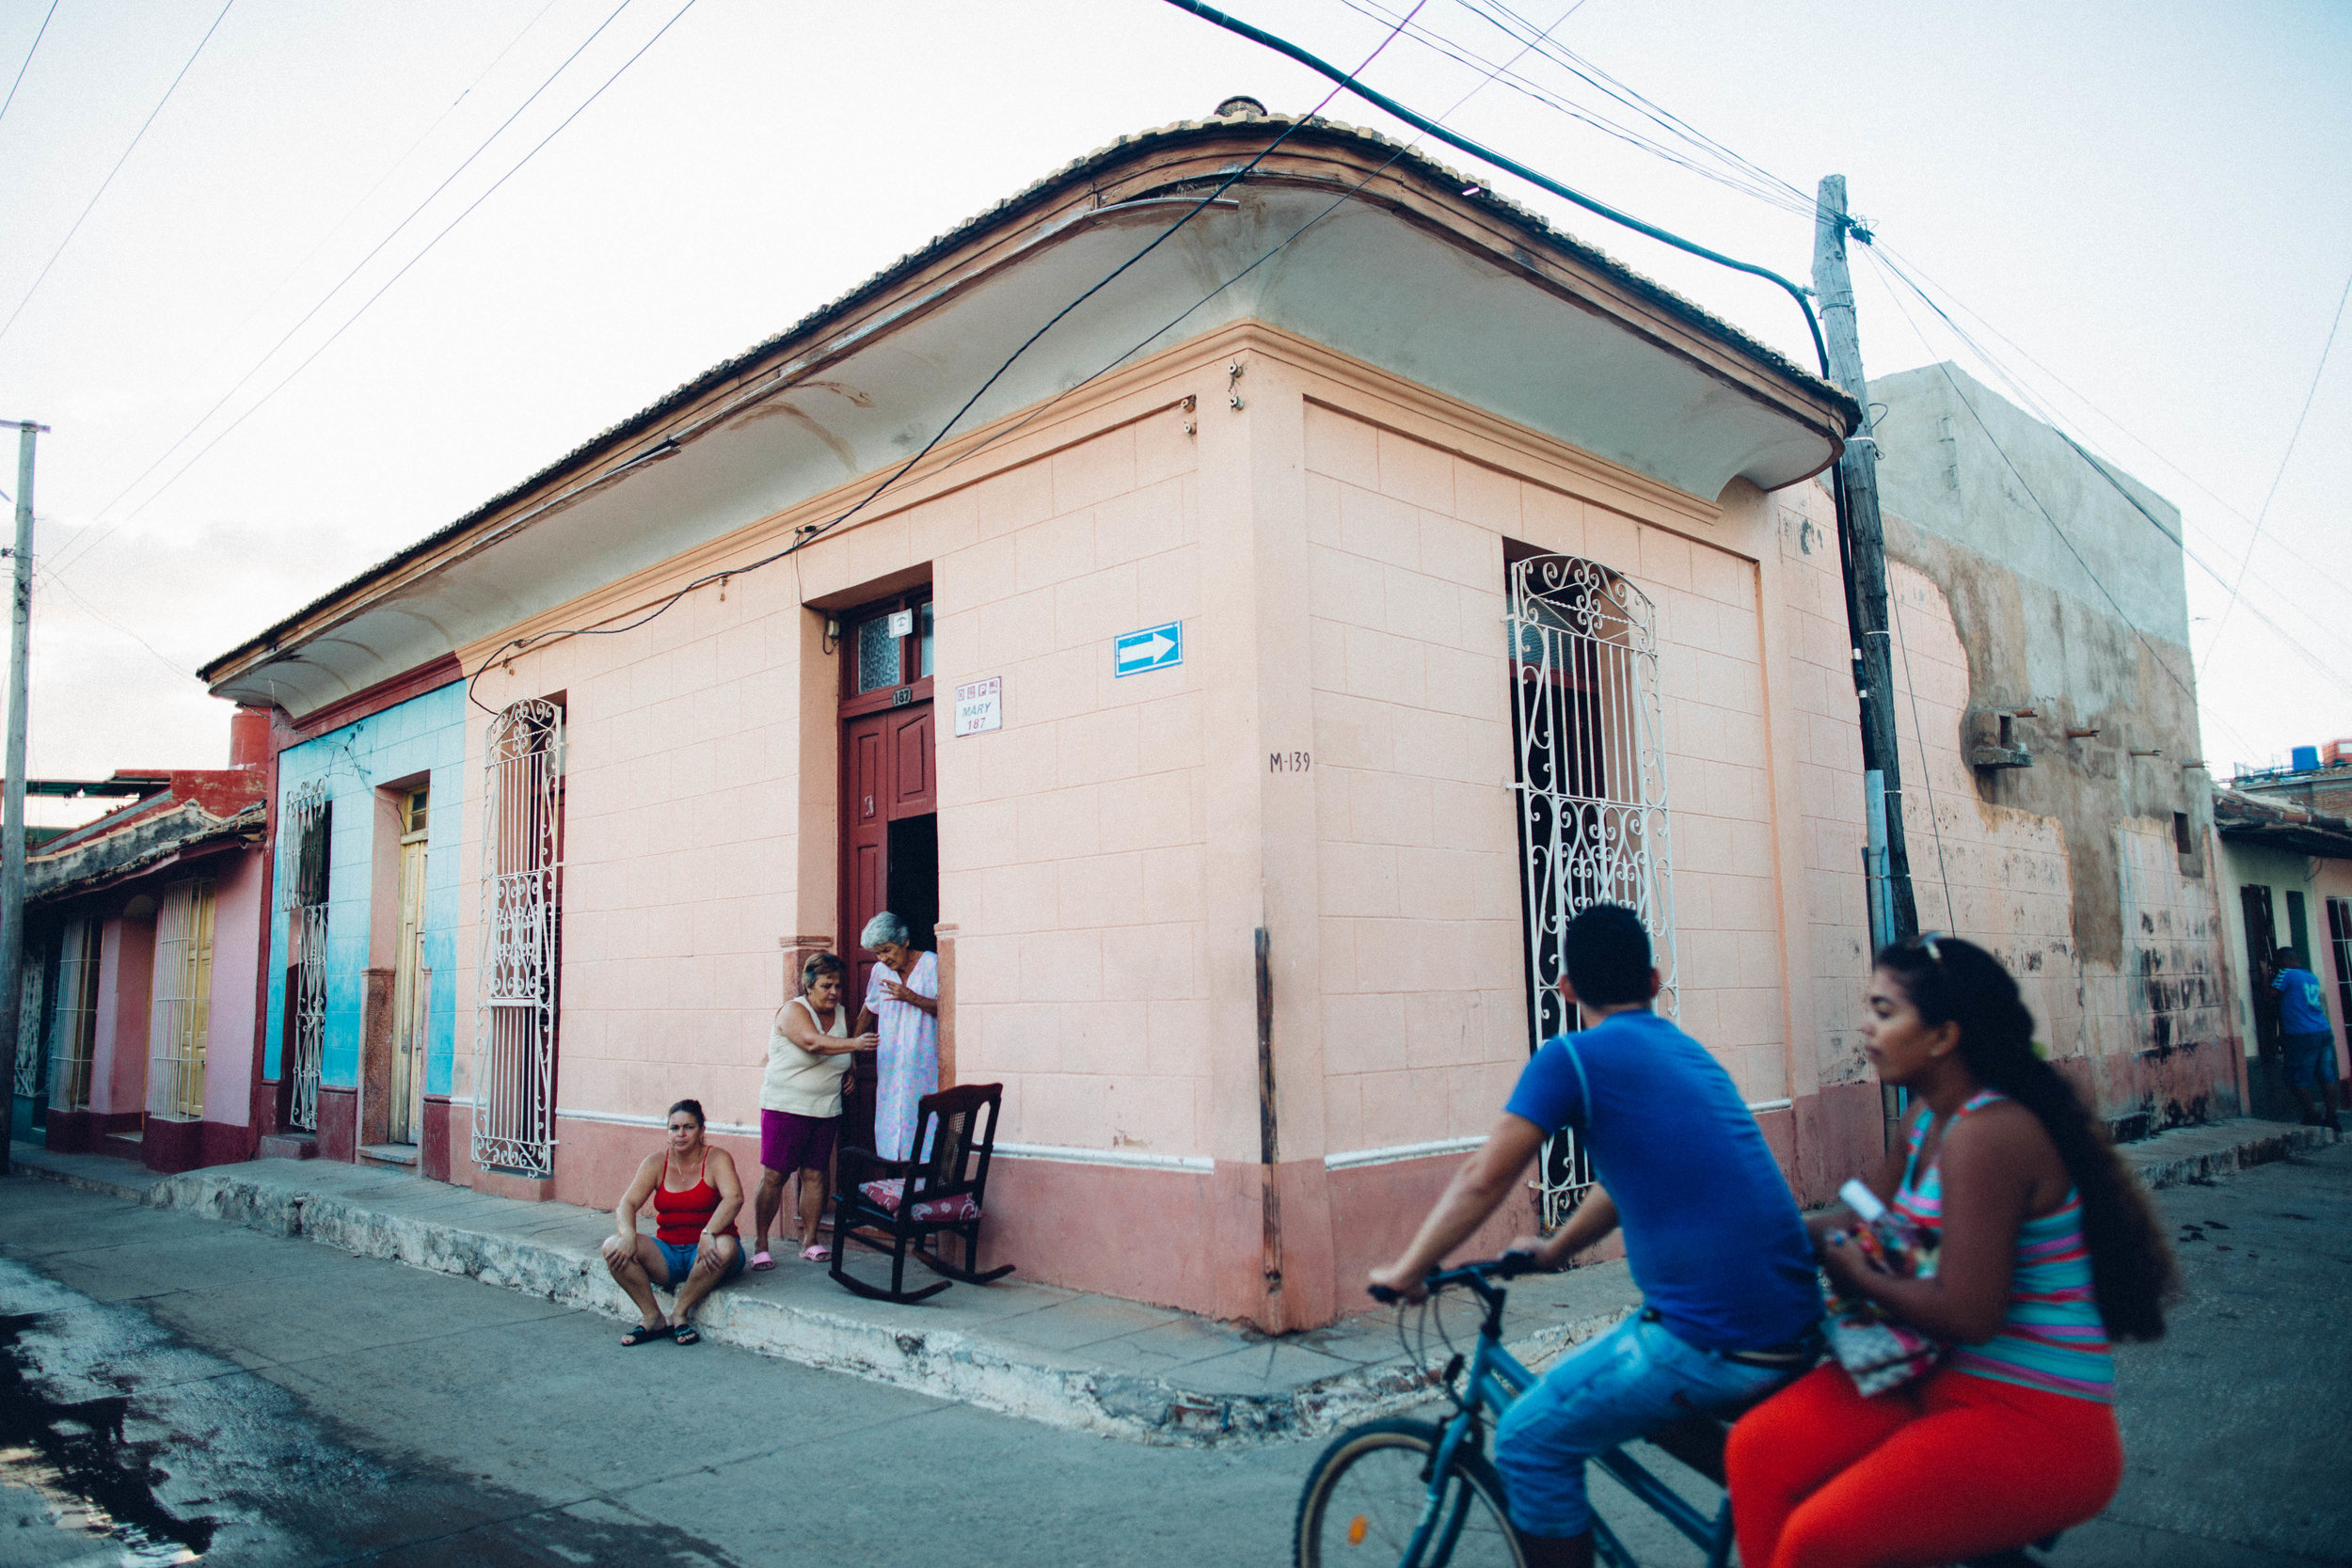 A daughter, a mother and a grandmother congregate outside their home in Trinidad as a young couple rides past on a bike. Trinidad, Cuba.